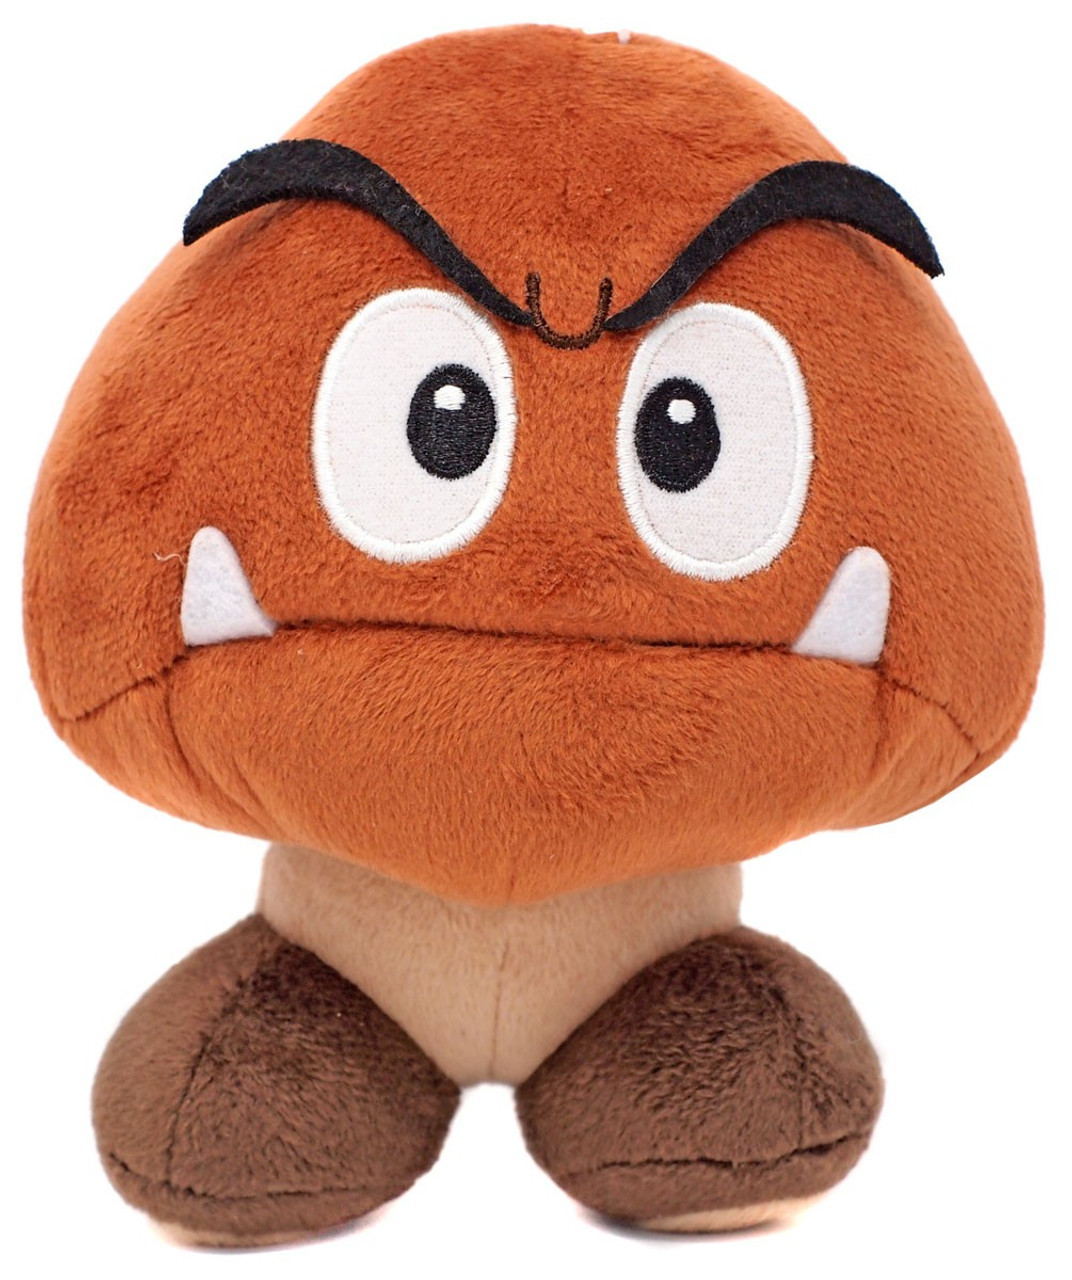 7537b6a8309 Super Mario All Star Collection Goomba 6 Plush San-Ei - ToyWiz